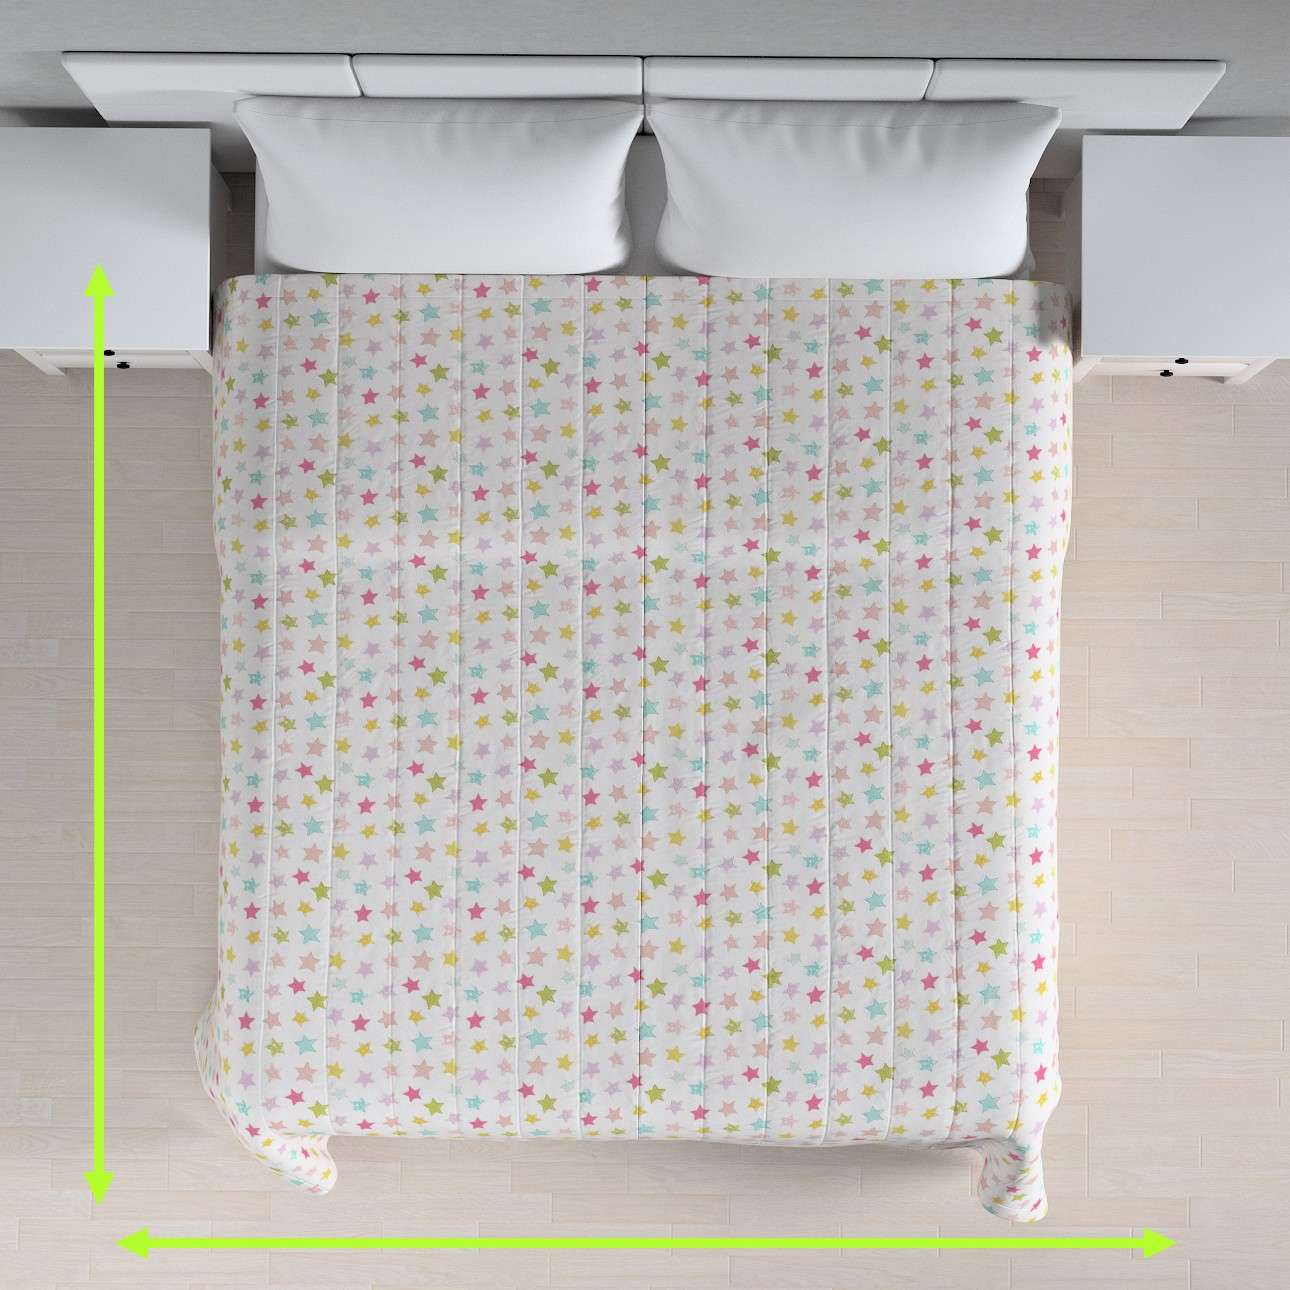 Quilted throw (vertical quilt pattern) in collection Little World, fabric: 141-52